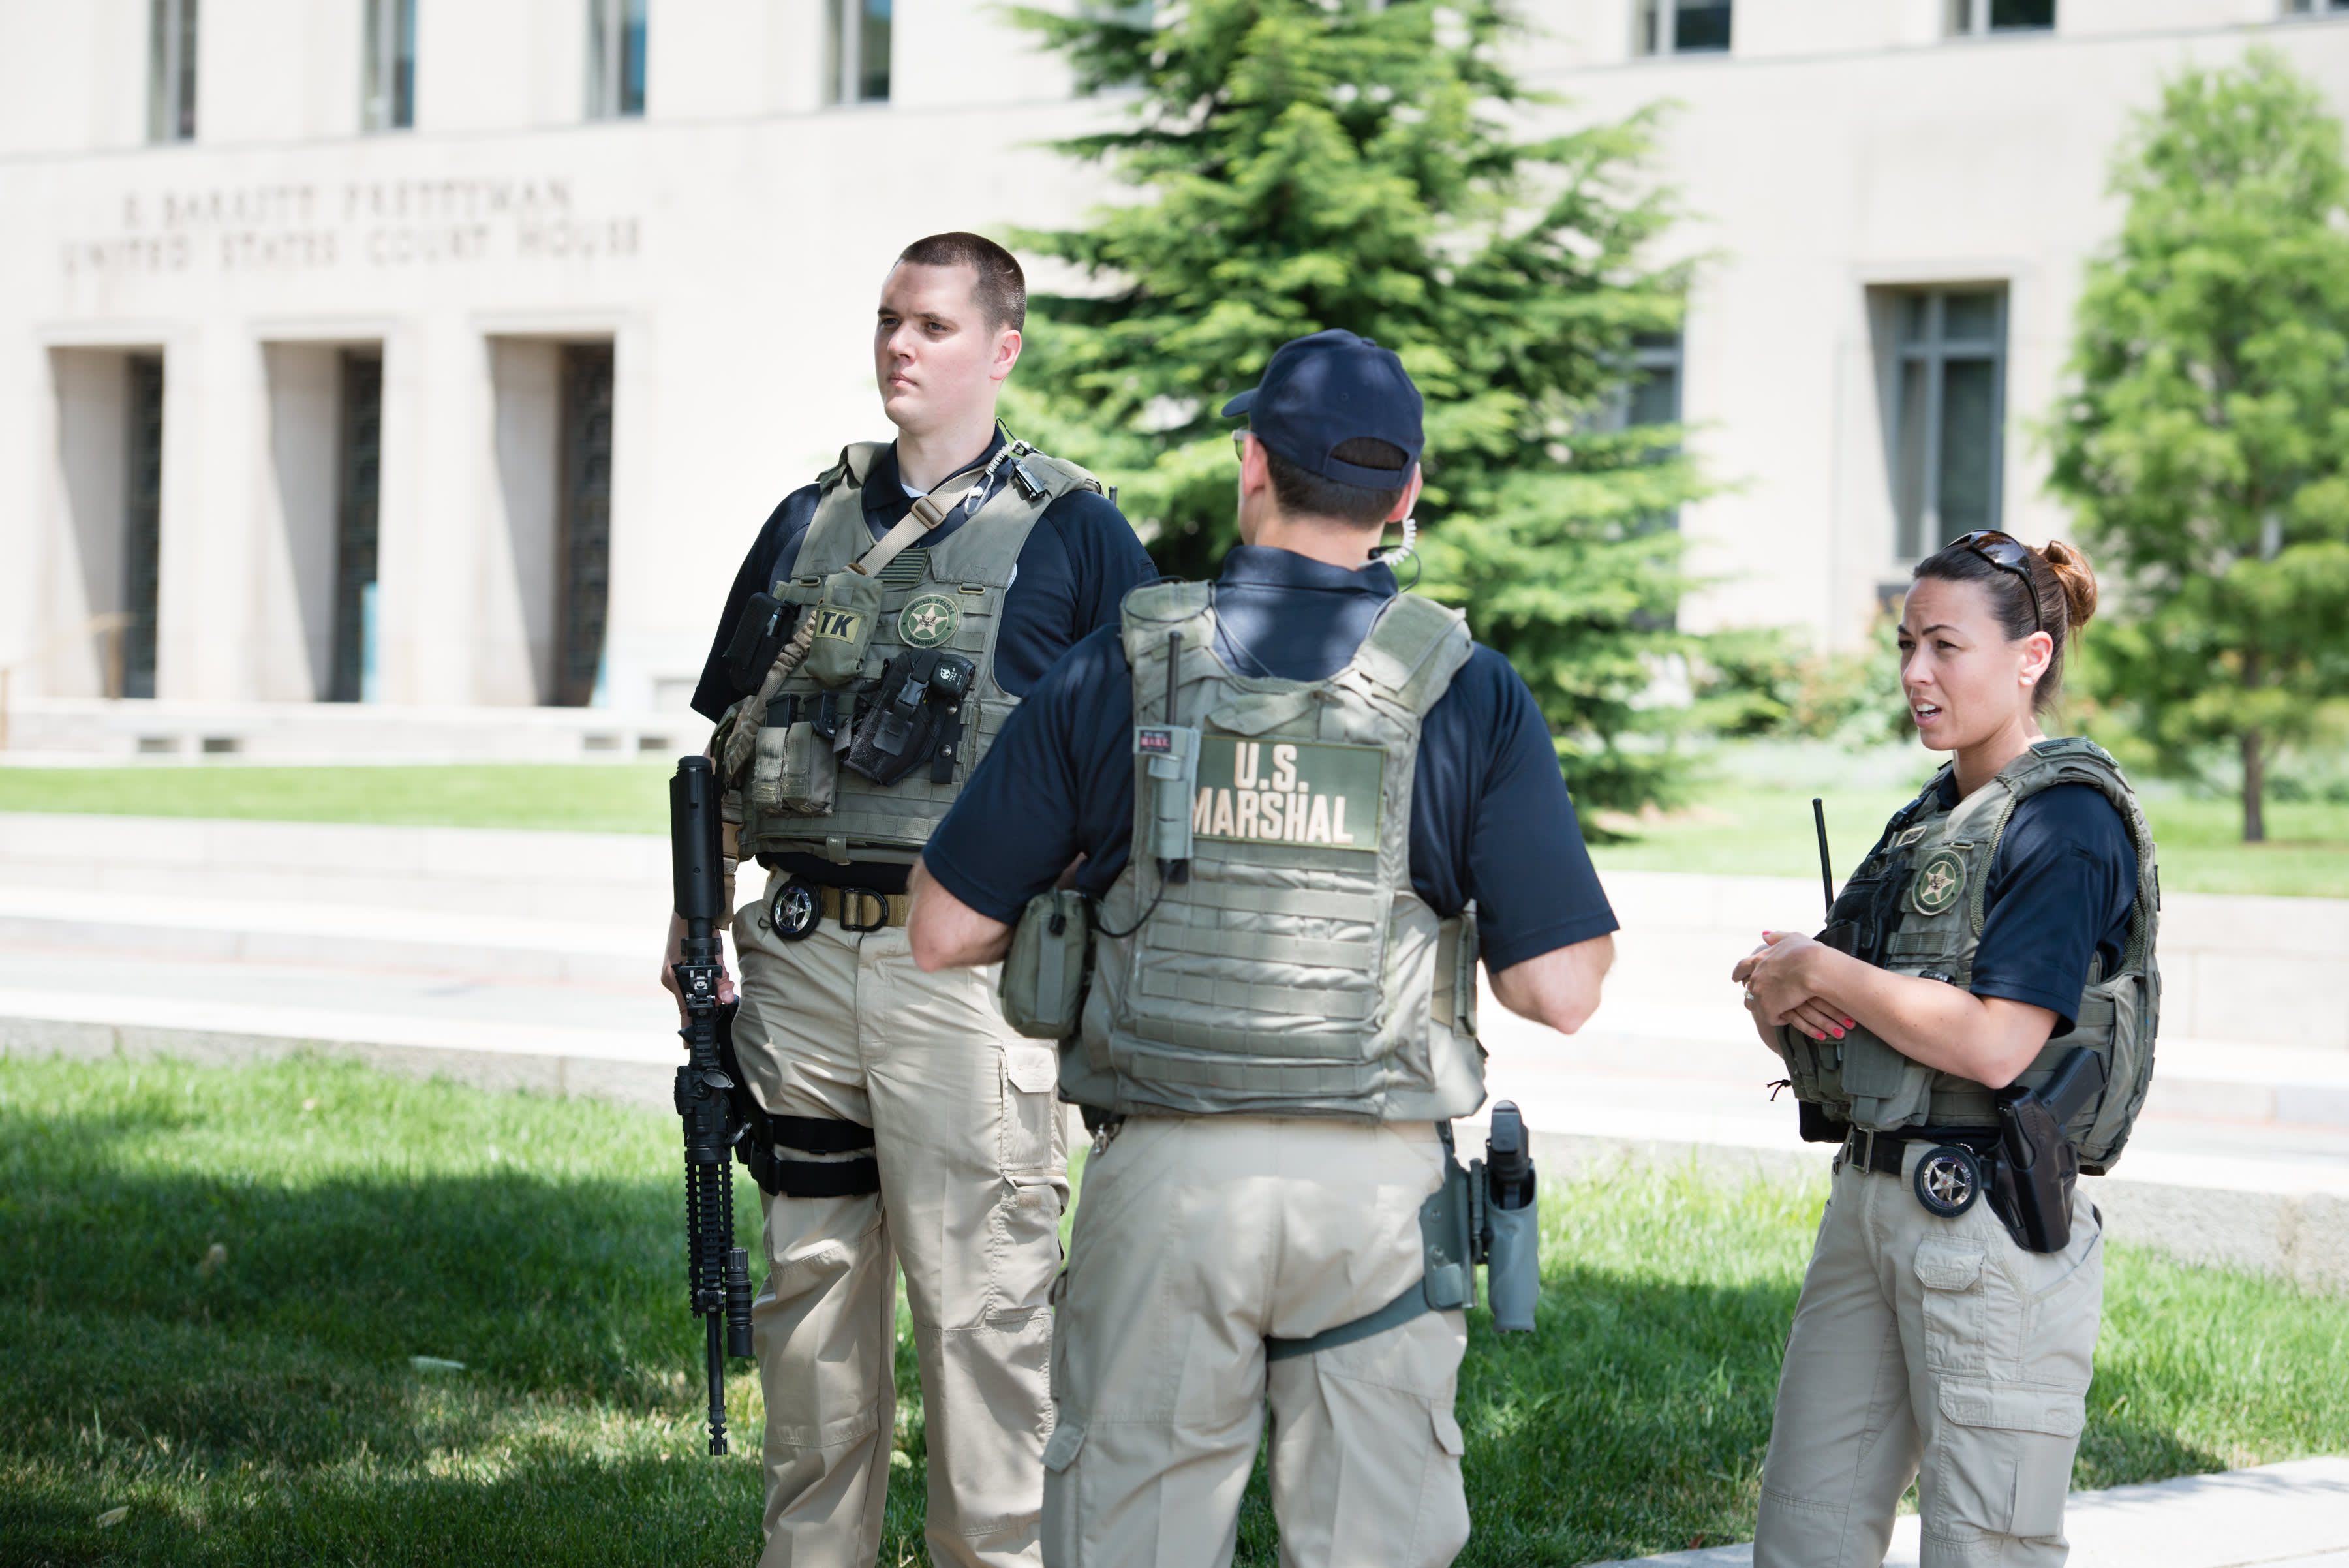 U.S. Marshals Service lacks resources to protect federal judges even as dangers rise 81%, report states thumbnail